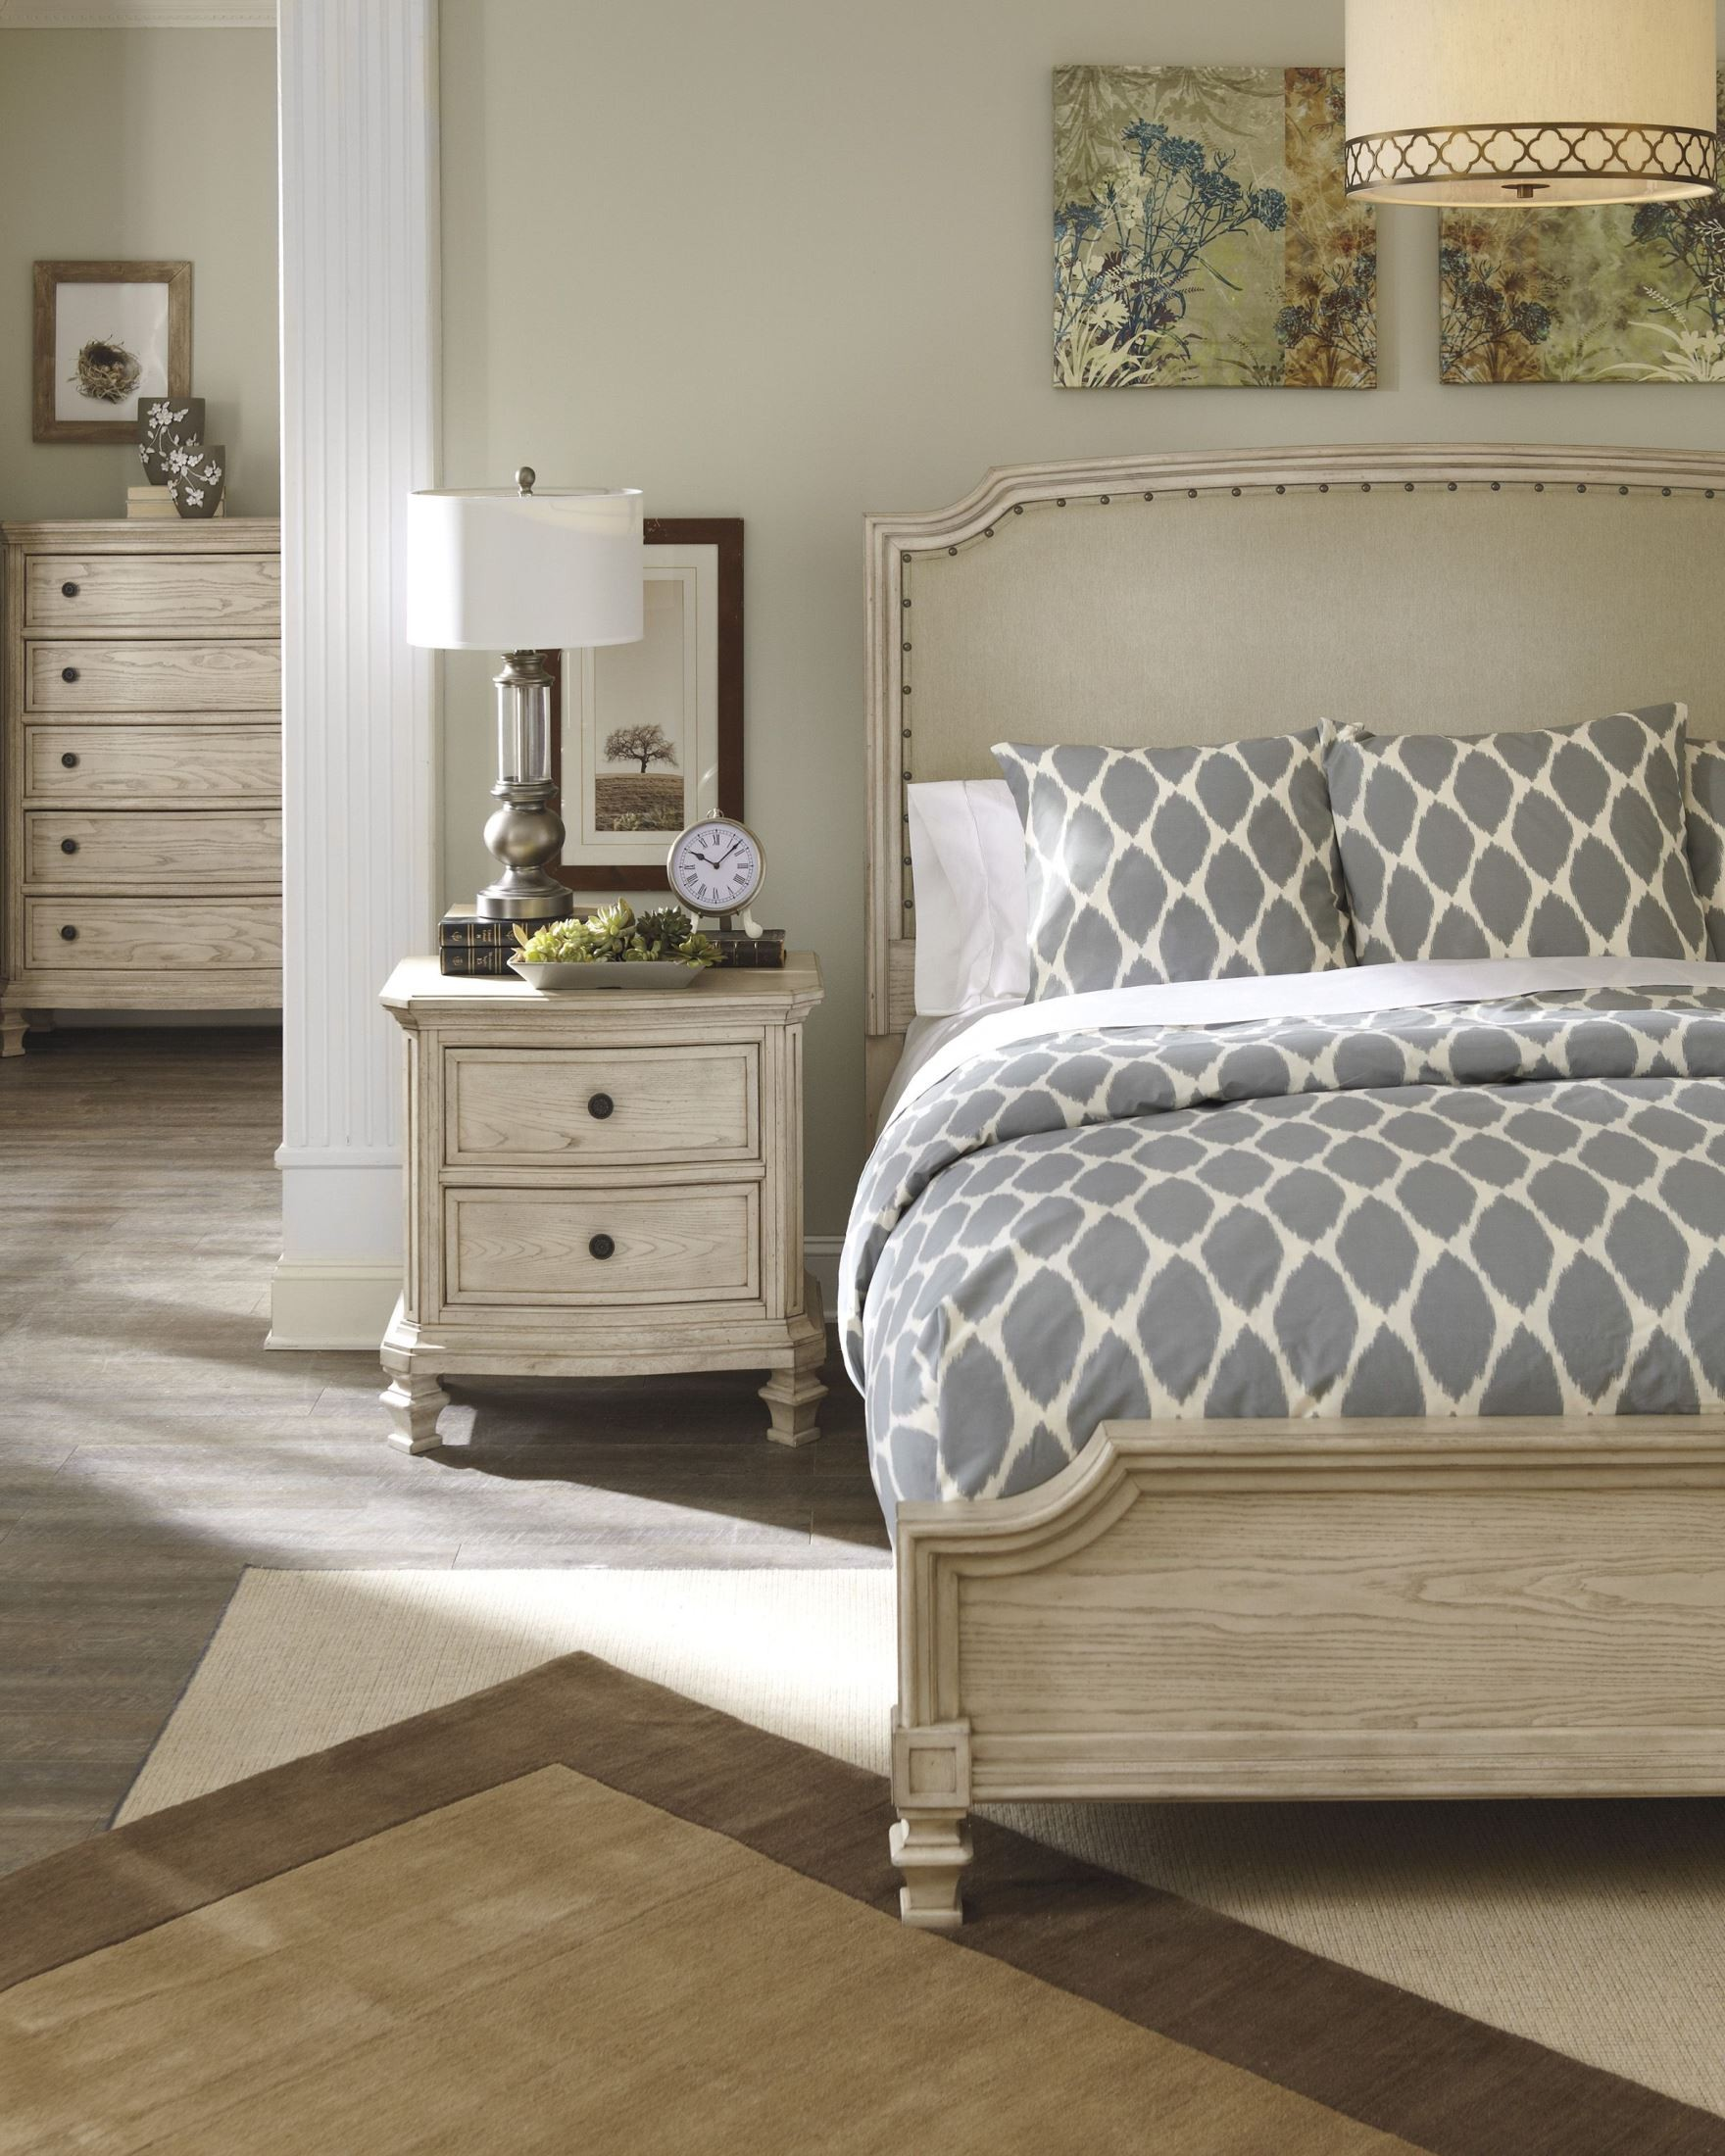 Demarlos Queen Upholstered Panel Bed From Ashley B693 77 74 96 Coleman Furniture